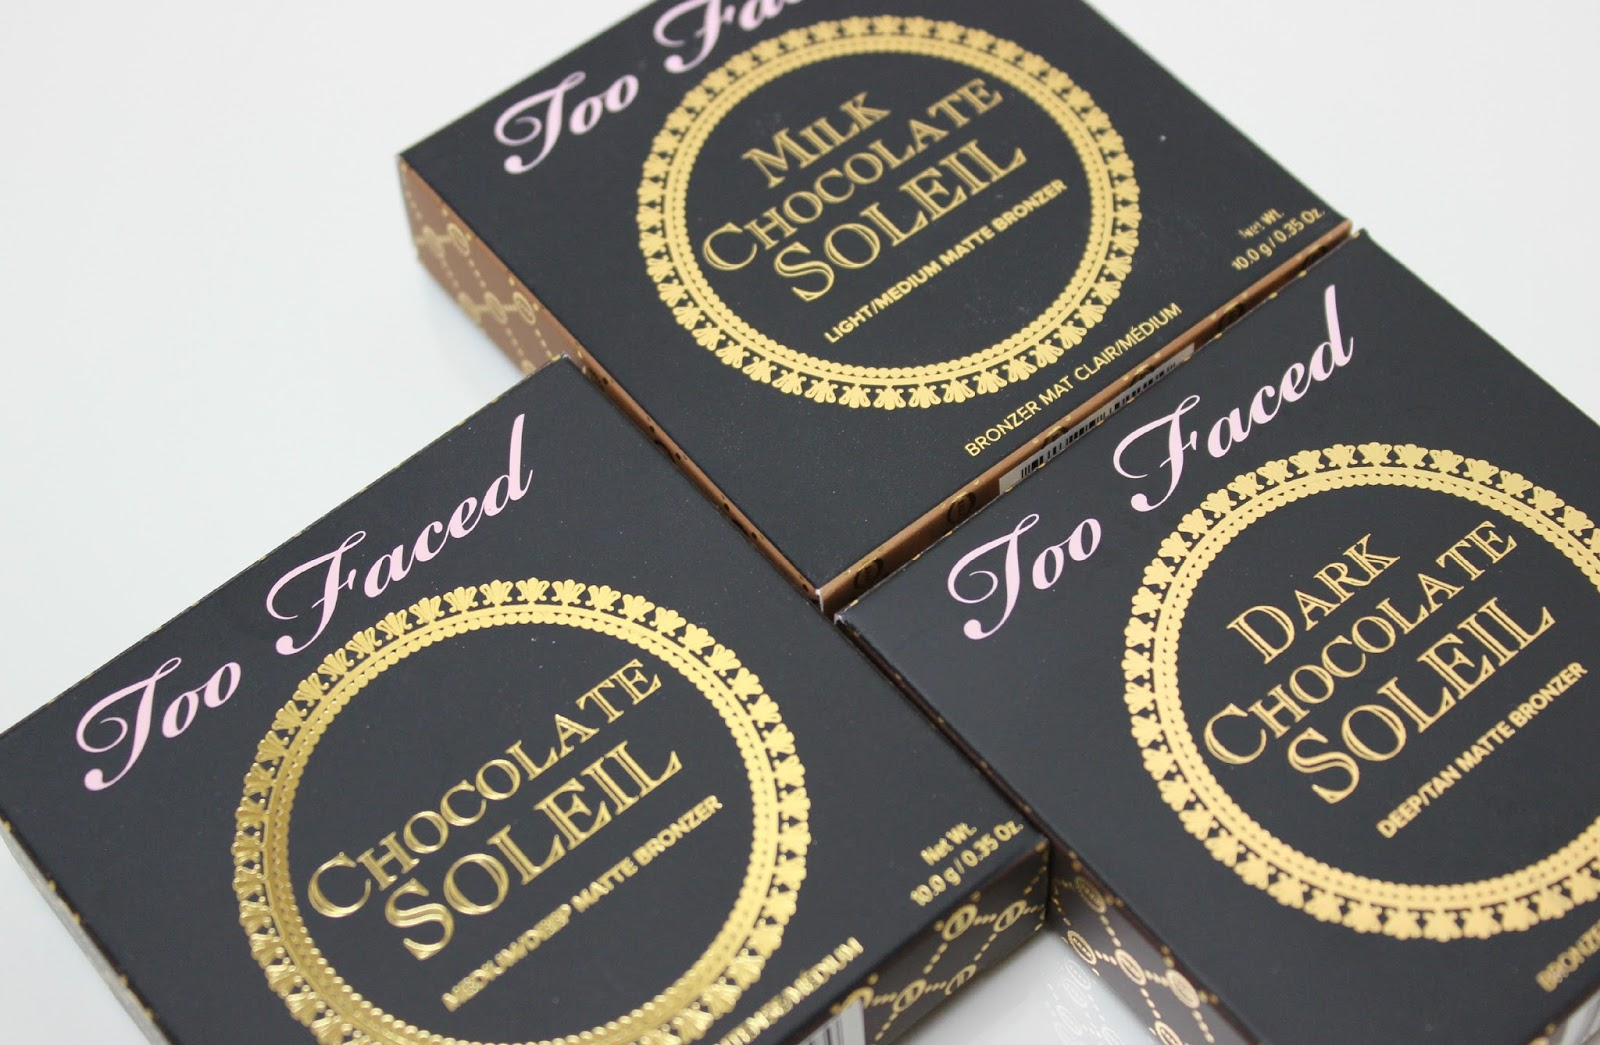 A picture of Too Faced Milk Chocolate Soleil, Chocolate Soleil and Dark Chocolate Soleil